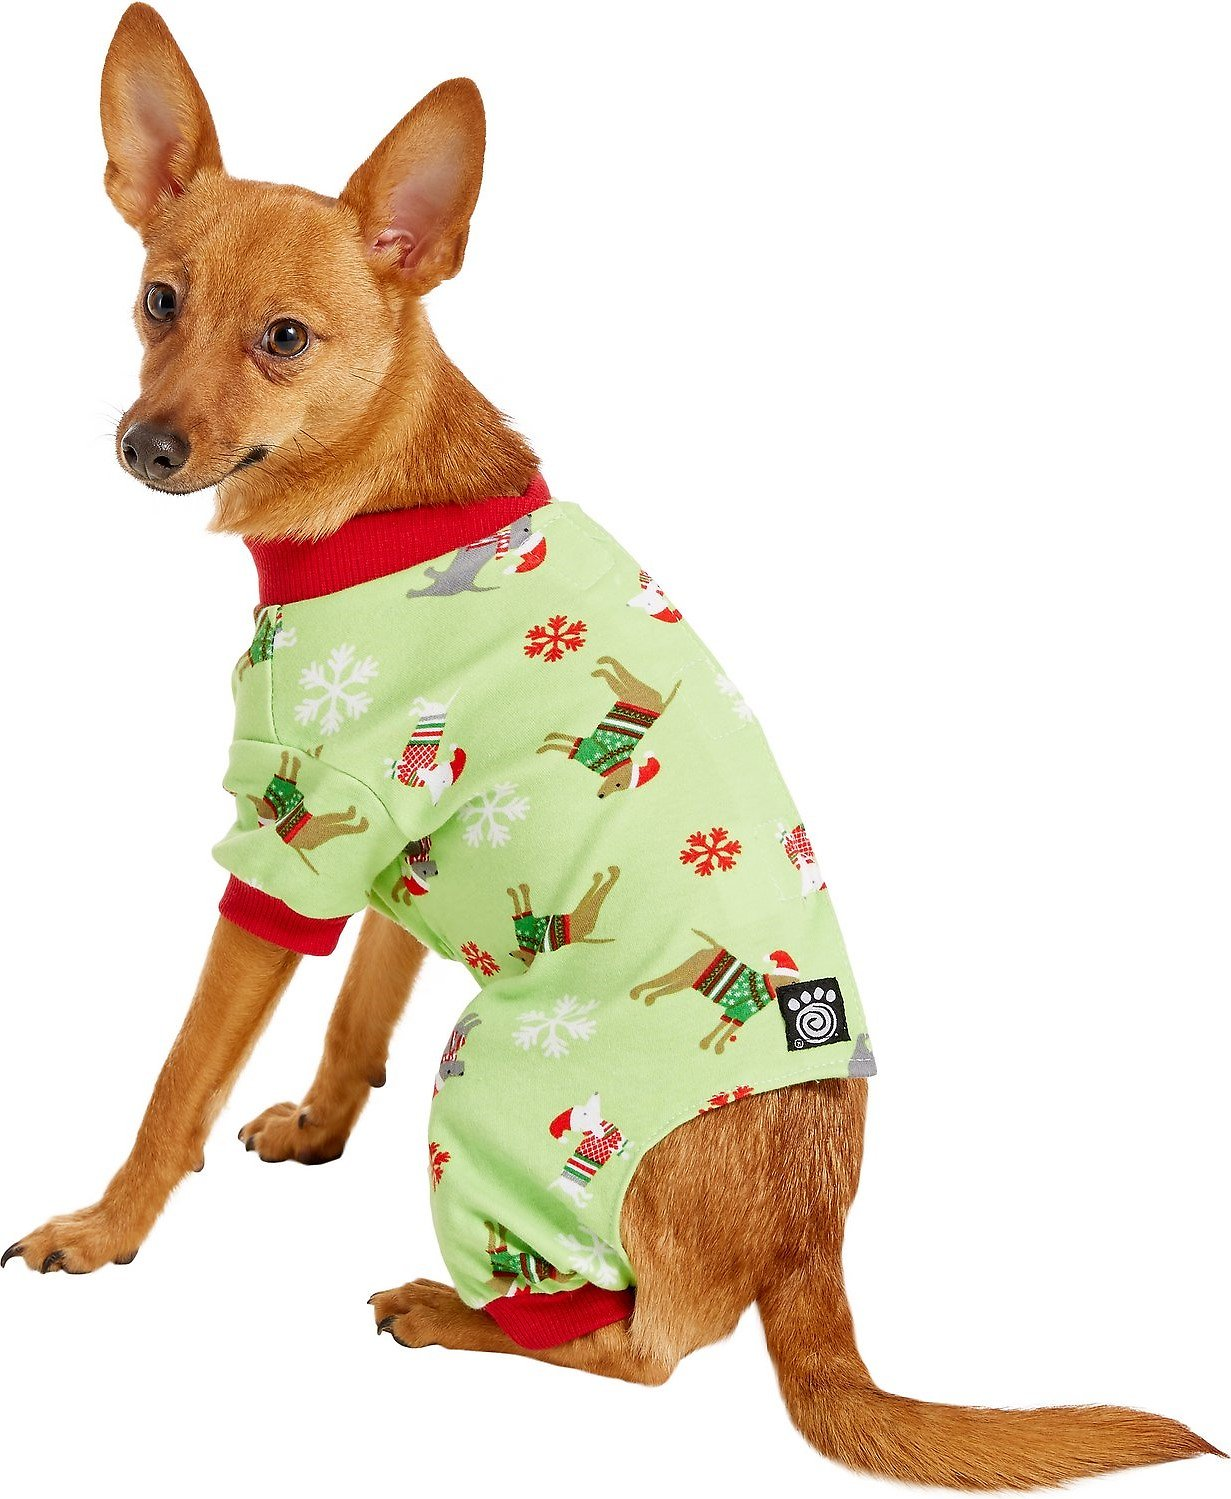 Christmas Pajamas For Dog.Petrageous Designs Holiday Dog Pajamas X Small Green